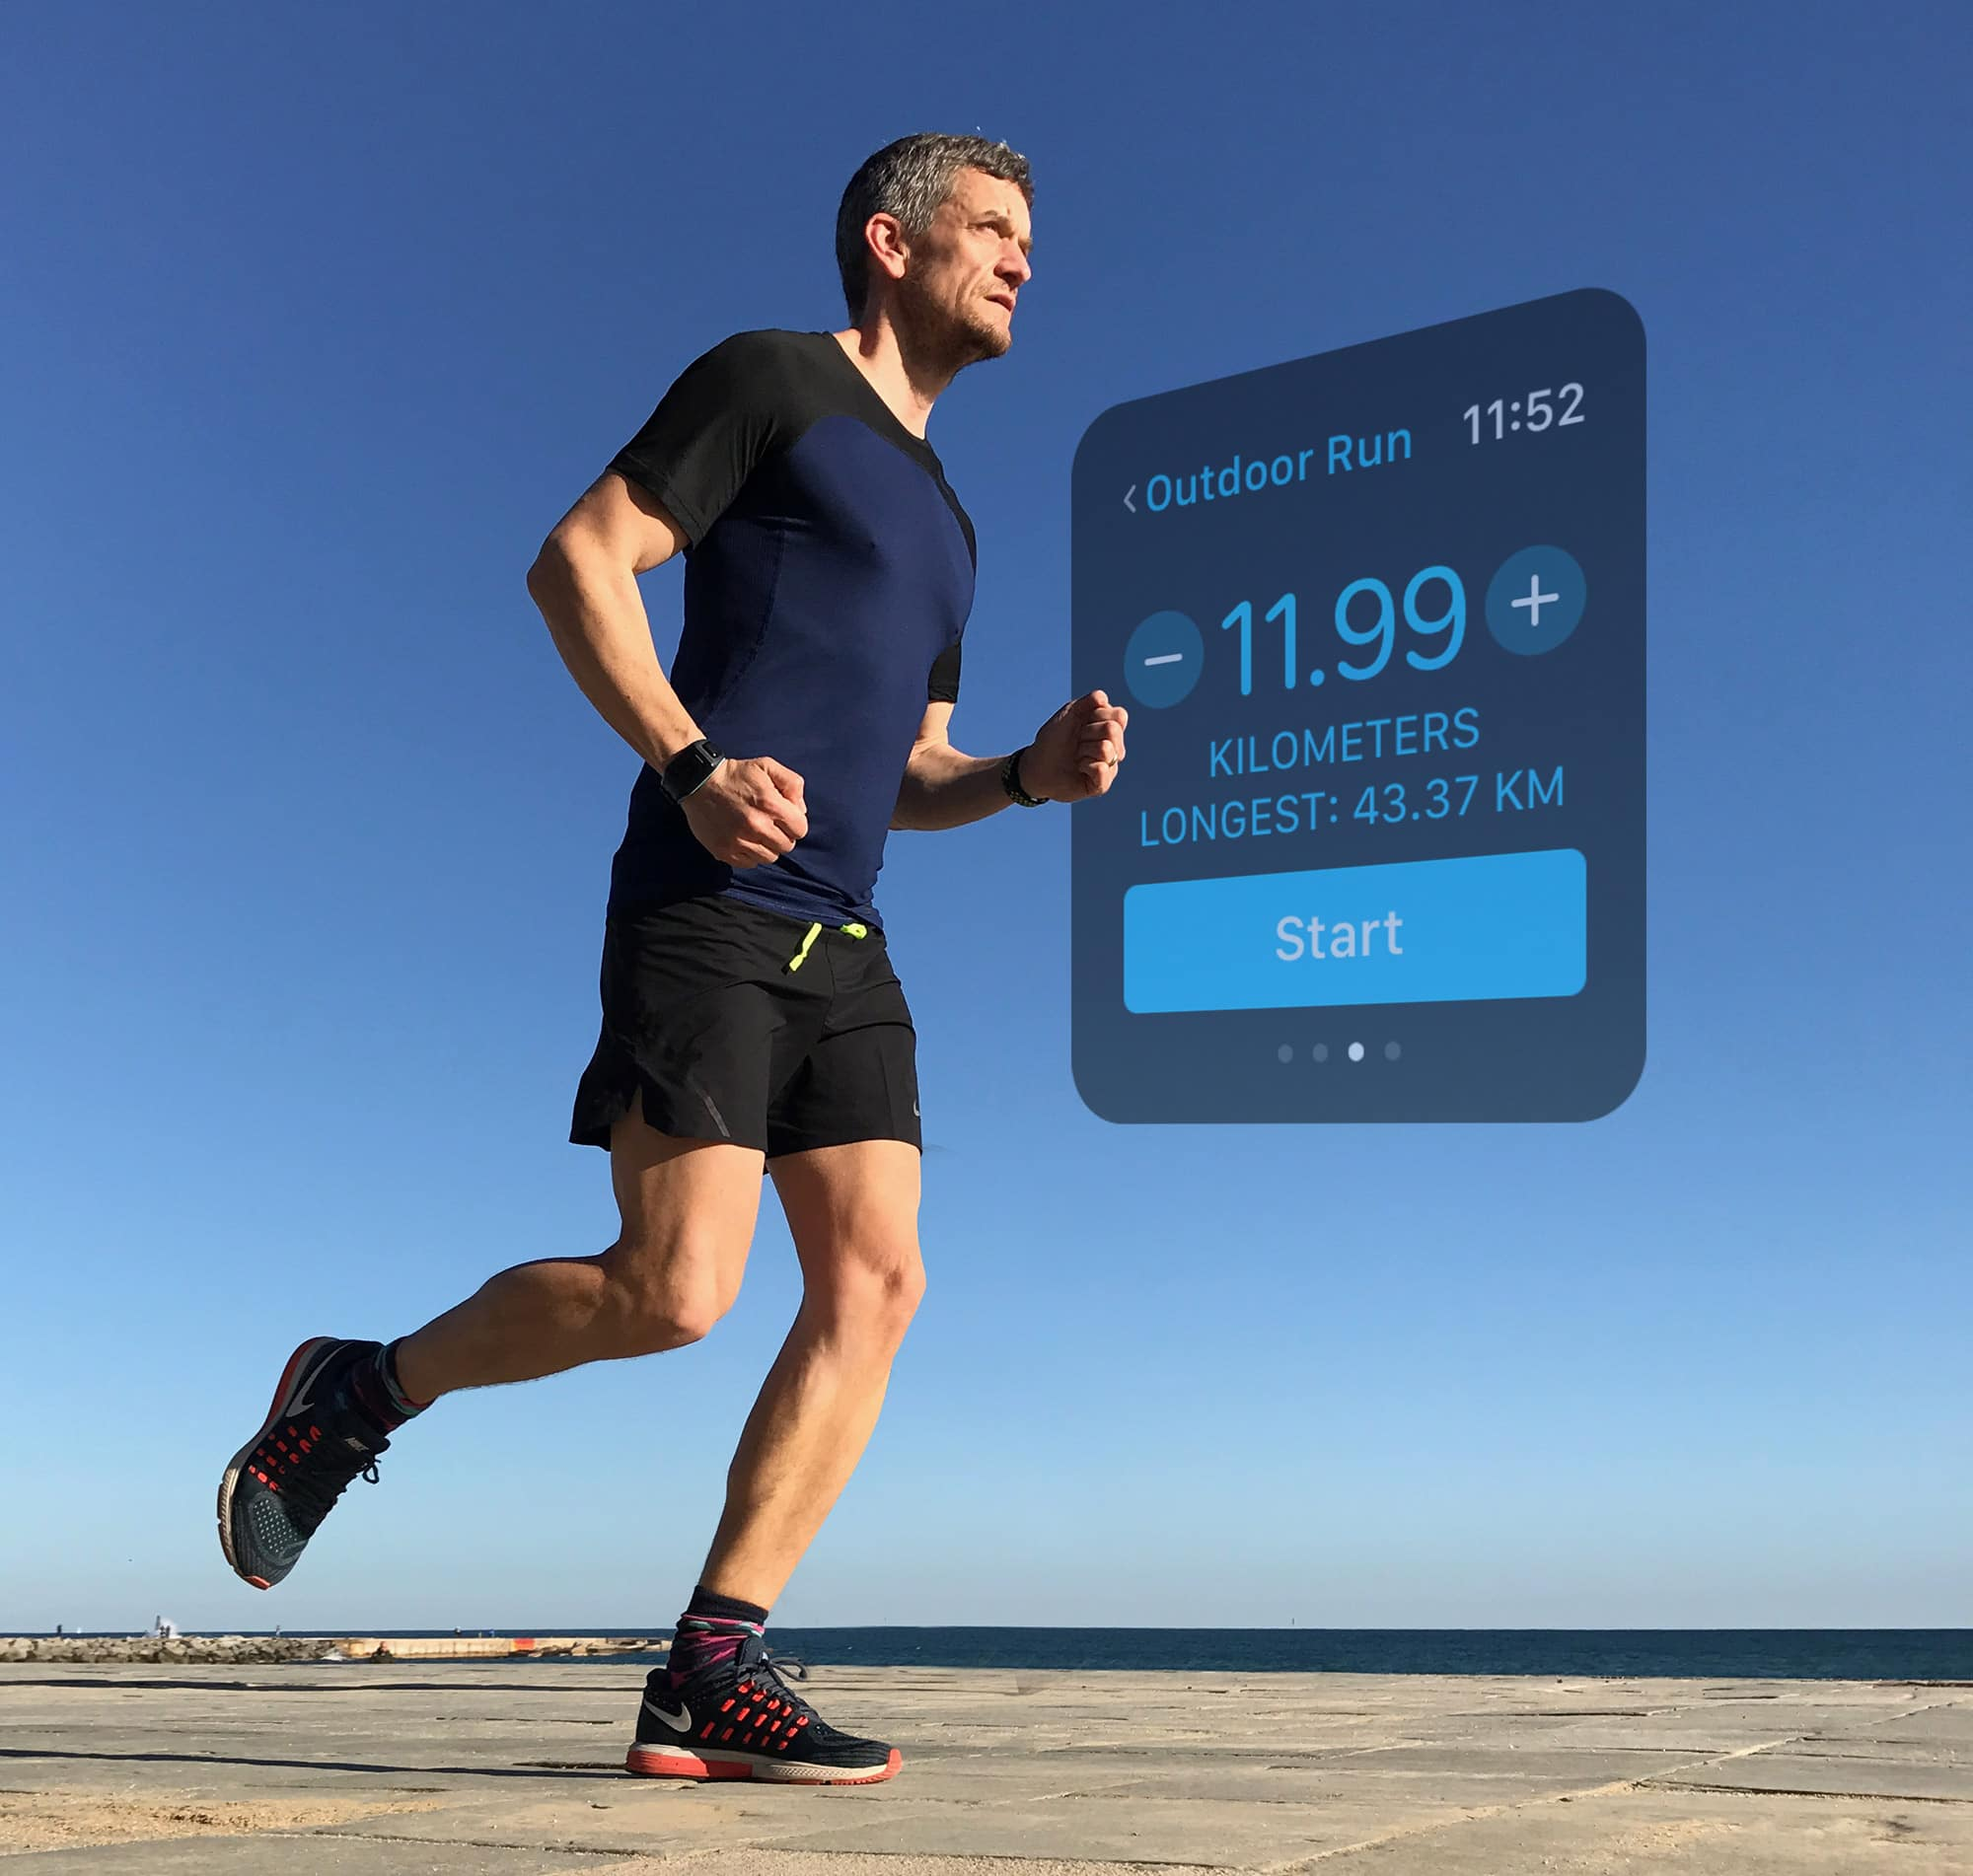 Choosing an Apple Watch running app? Let us do the legwork for you